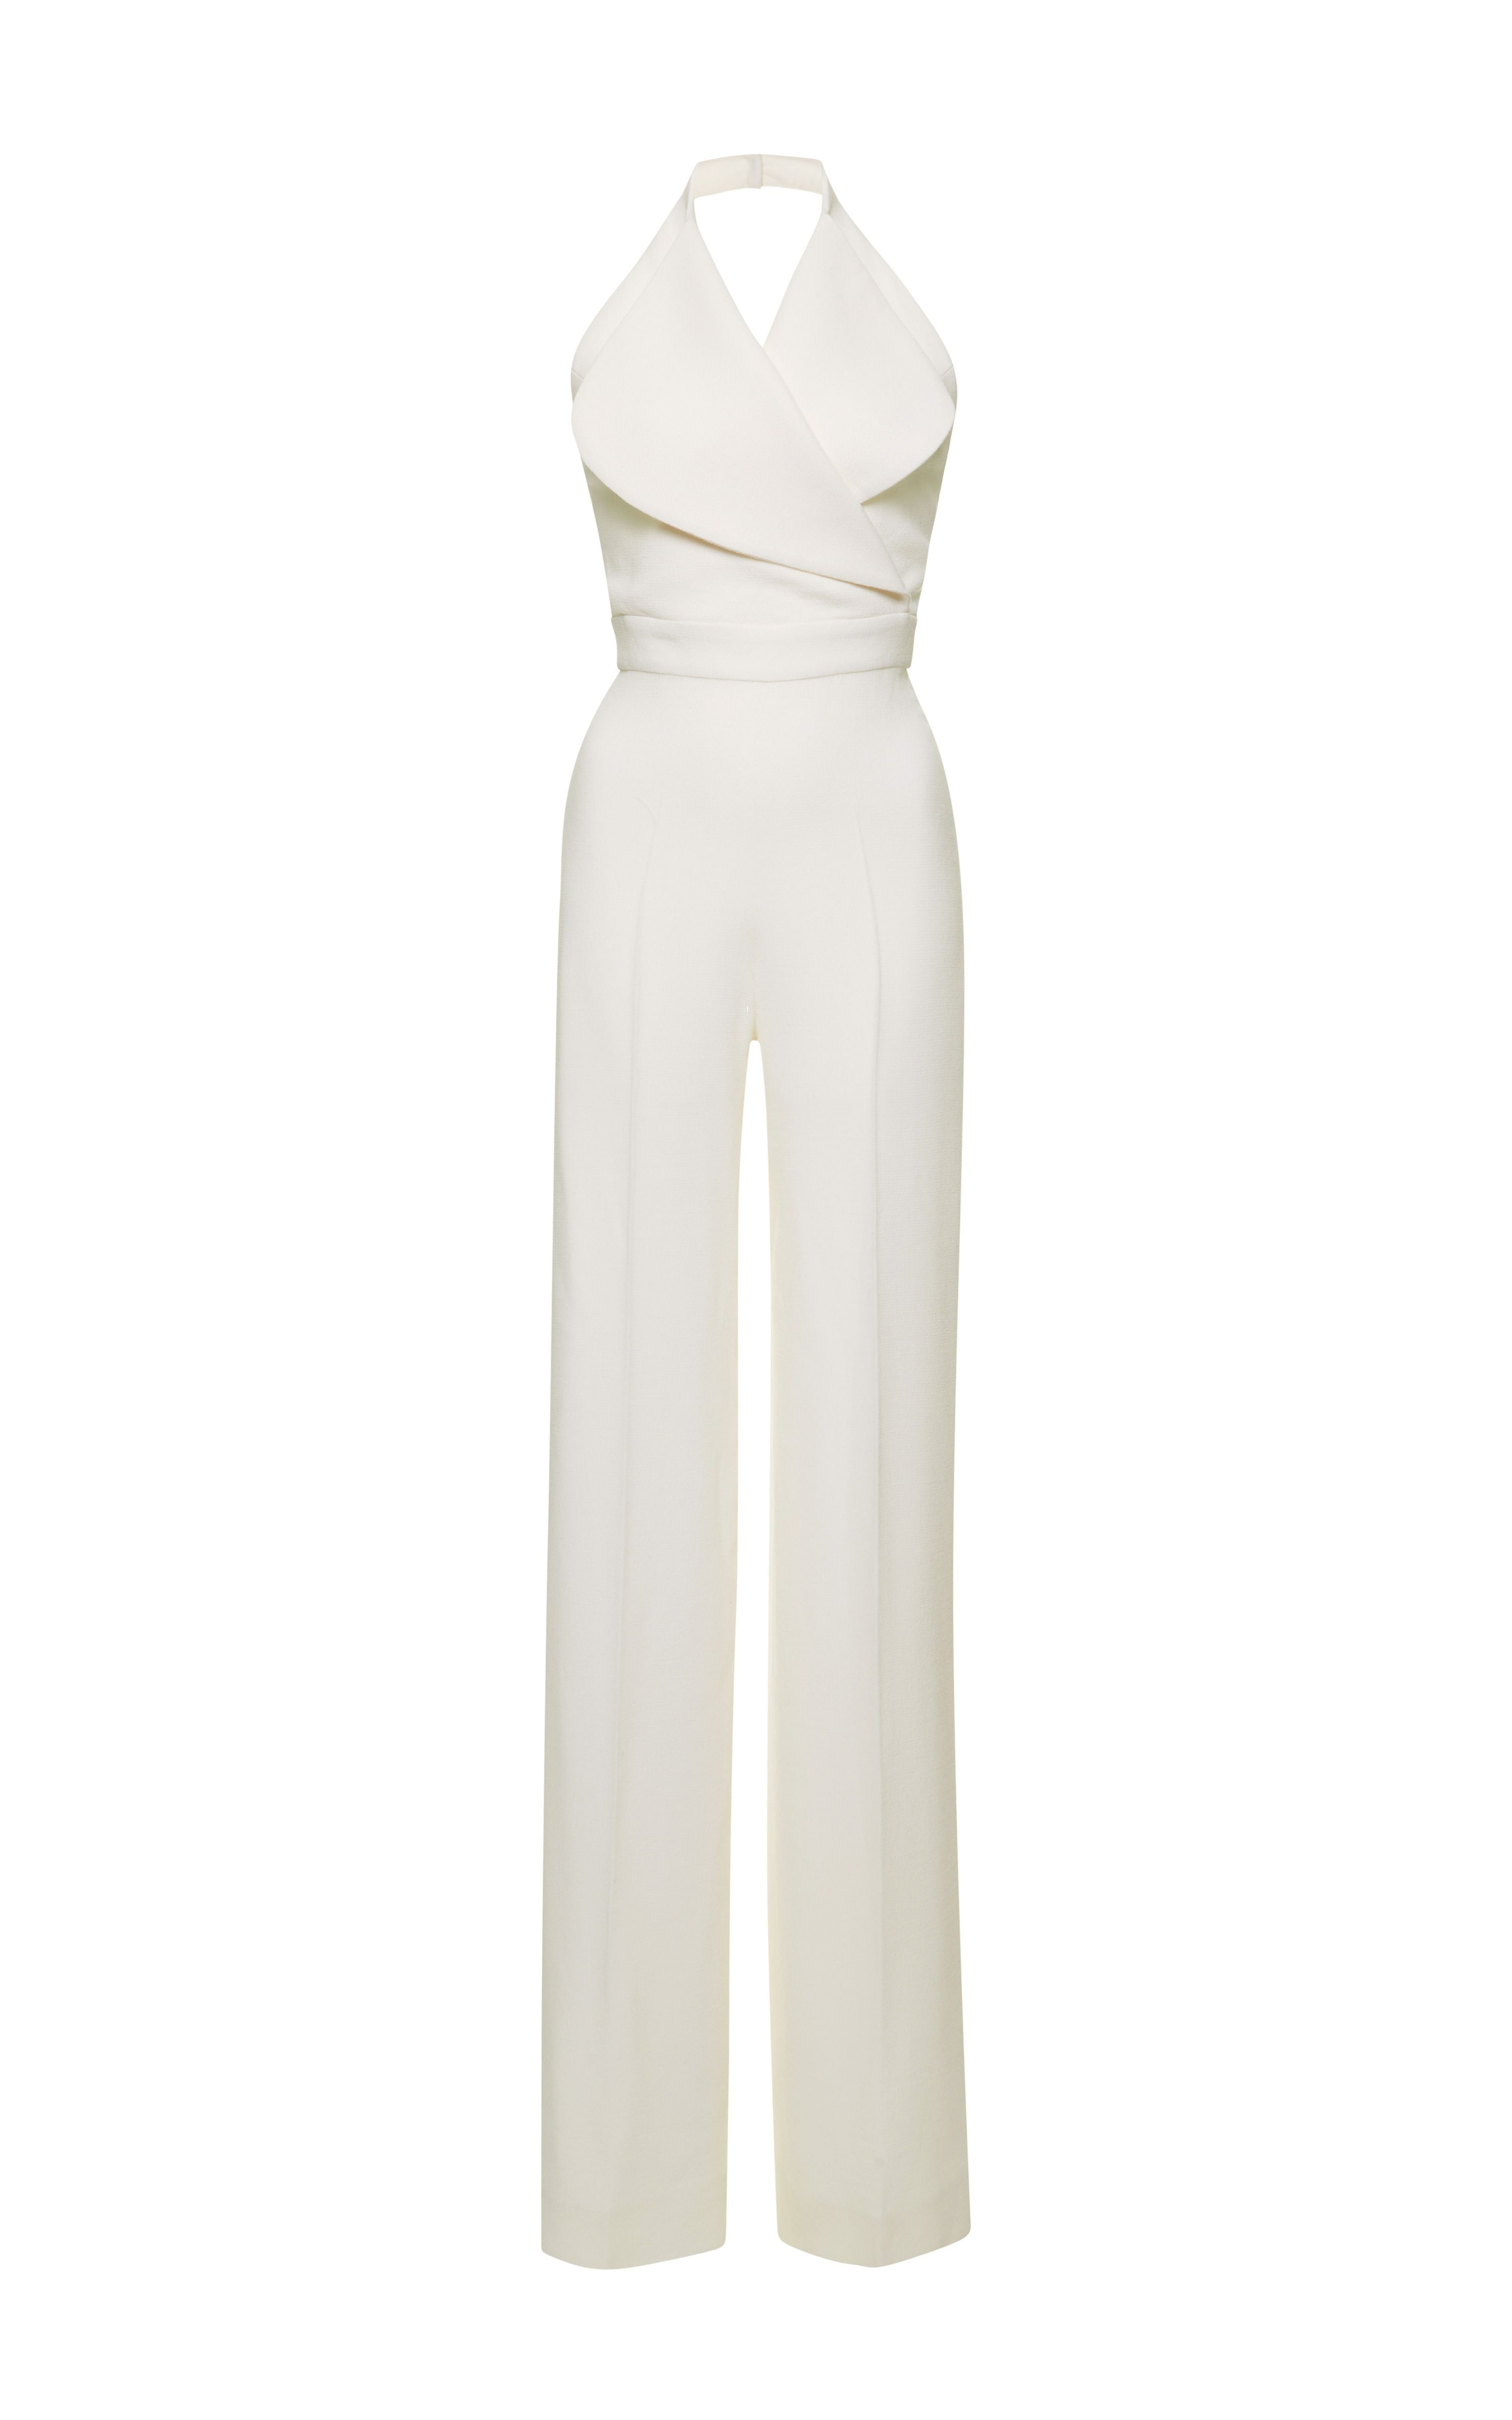 Minimal and Classic Style // Winter White Wool-Crepe Halterneck Jumpsuit by Emilia Wickstead - Moda Operandi